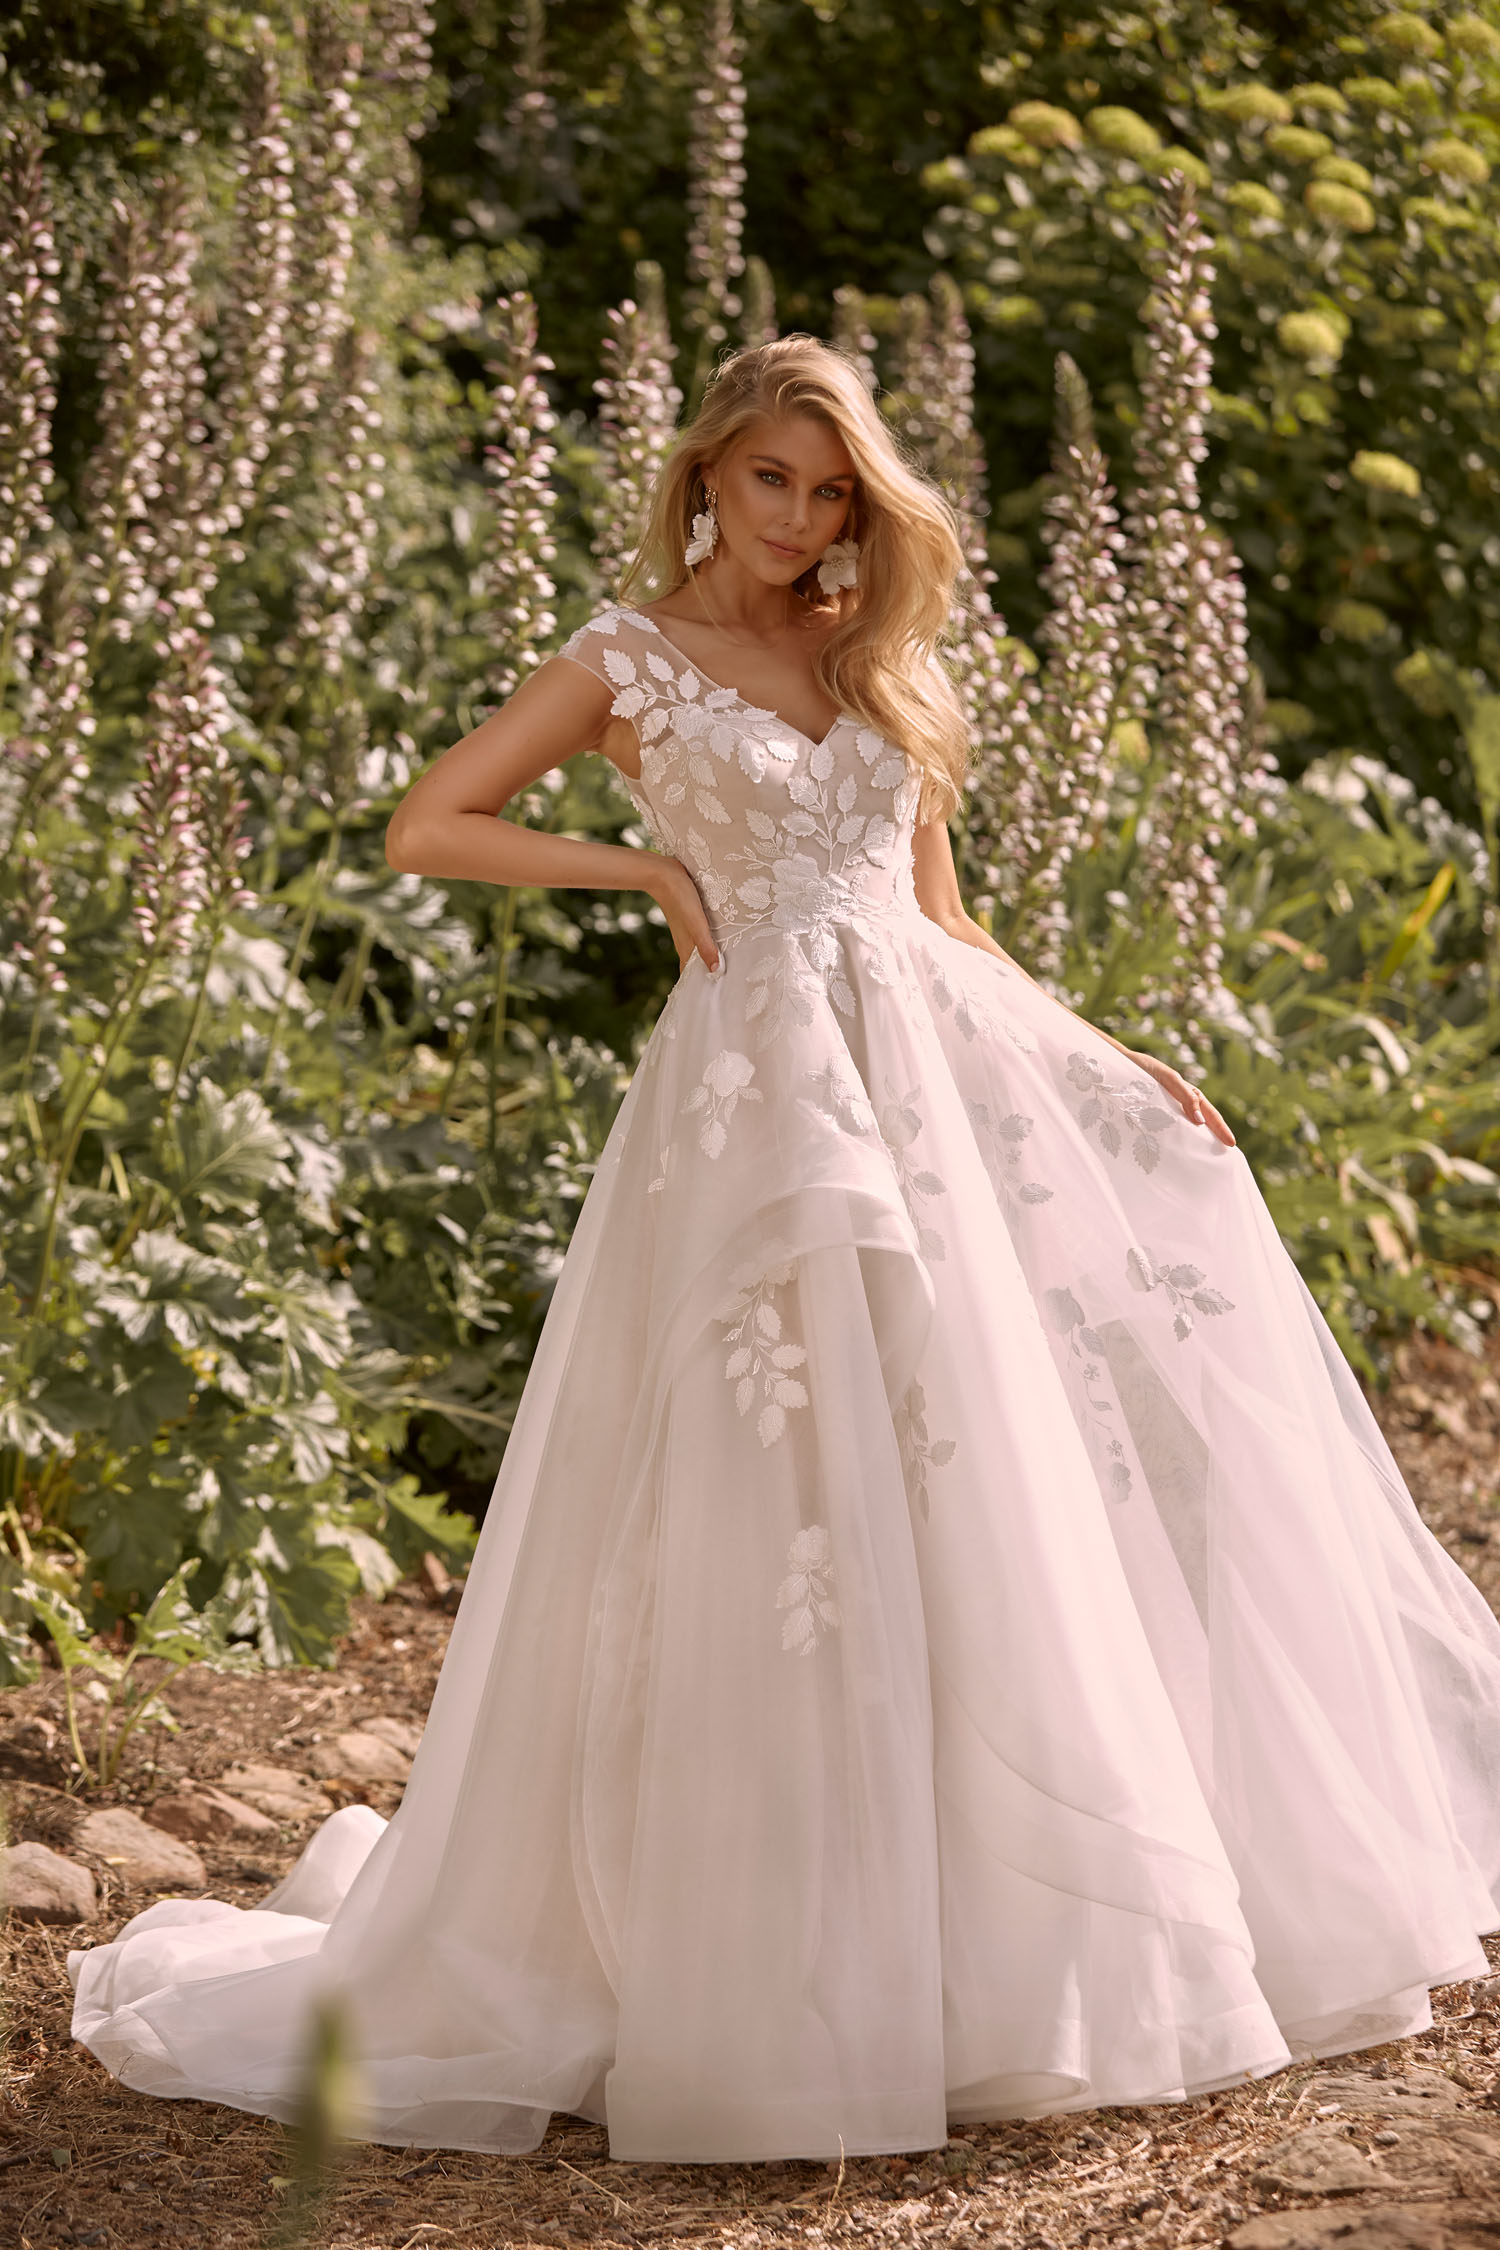 CASSIA-ML20010-FULL-LENGTH-TIERED-TULLE-A-LINE-SKIRT-WITH-FITTED-BODICE-EMBROIDERED-LACE-APPLIQUES-ILLUSIONS-STRAPS-AND-BACK-WITH-V-NECKLINE-ZIPPER-CLOSURE-WEDDING-DRESS-MADI-LANE-BRIDAL-1